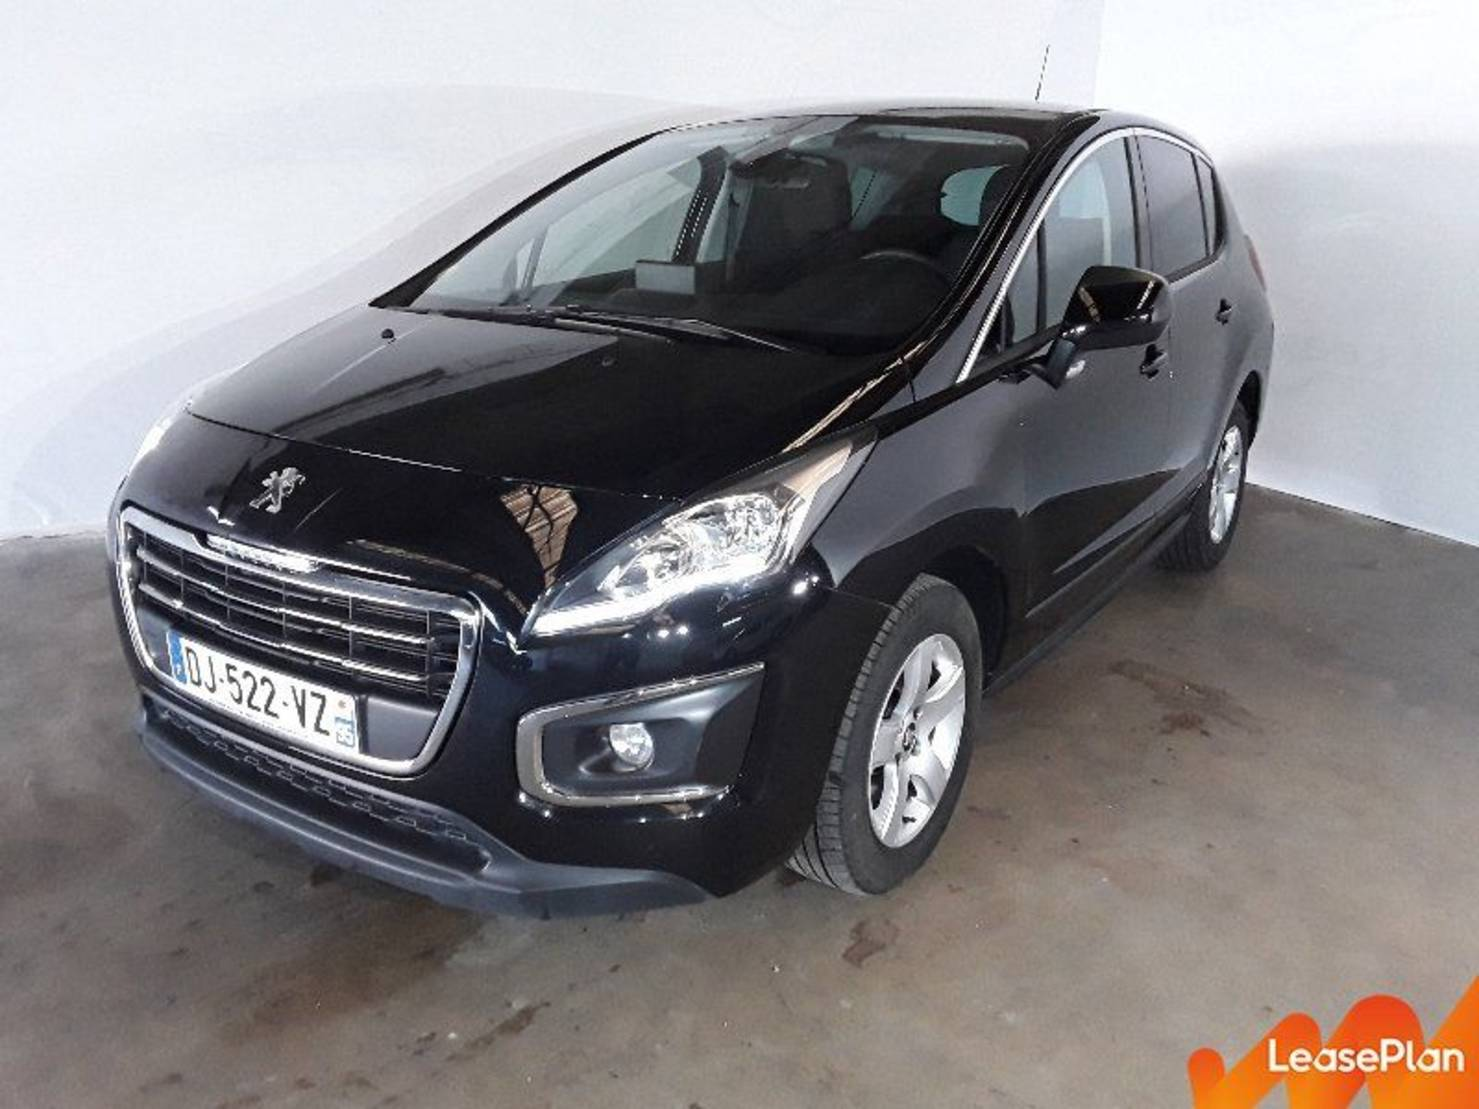 Peugeot 3008 2.0 HDi 150ch FAP BVM6, Business Pack detail2